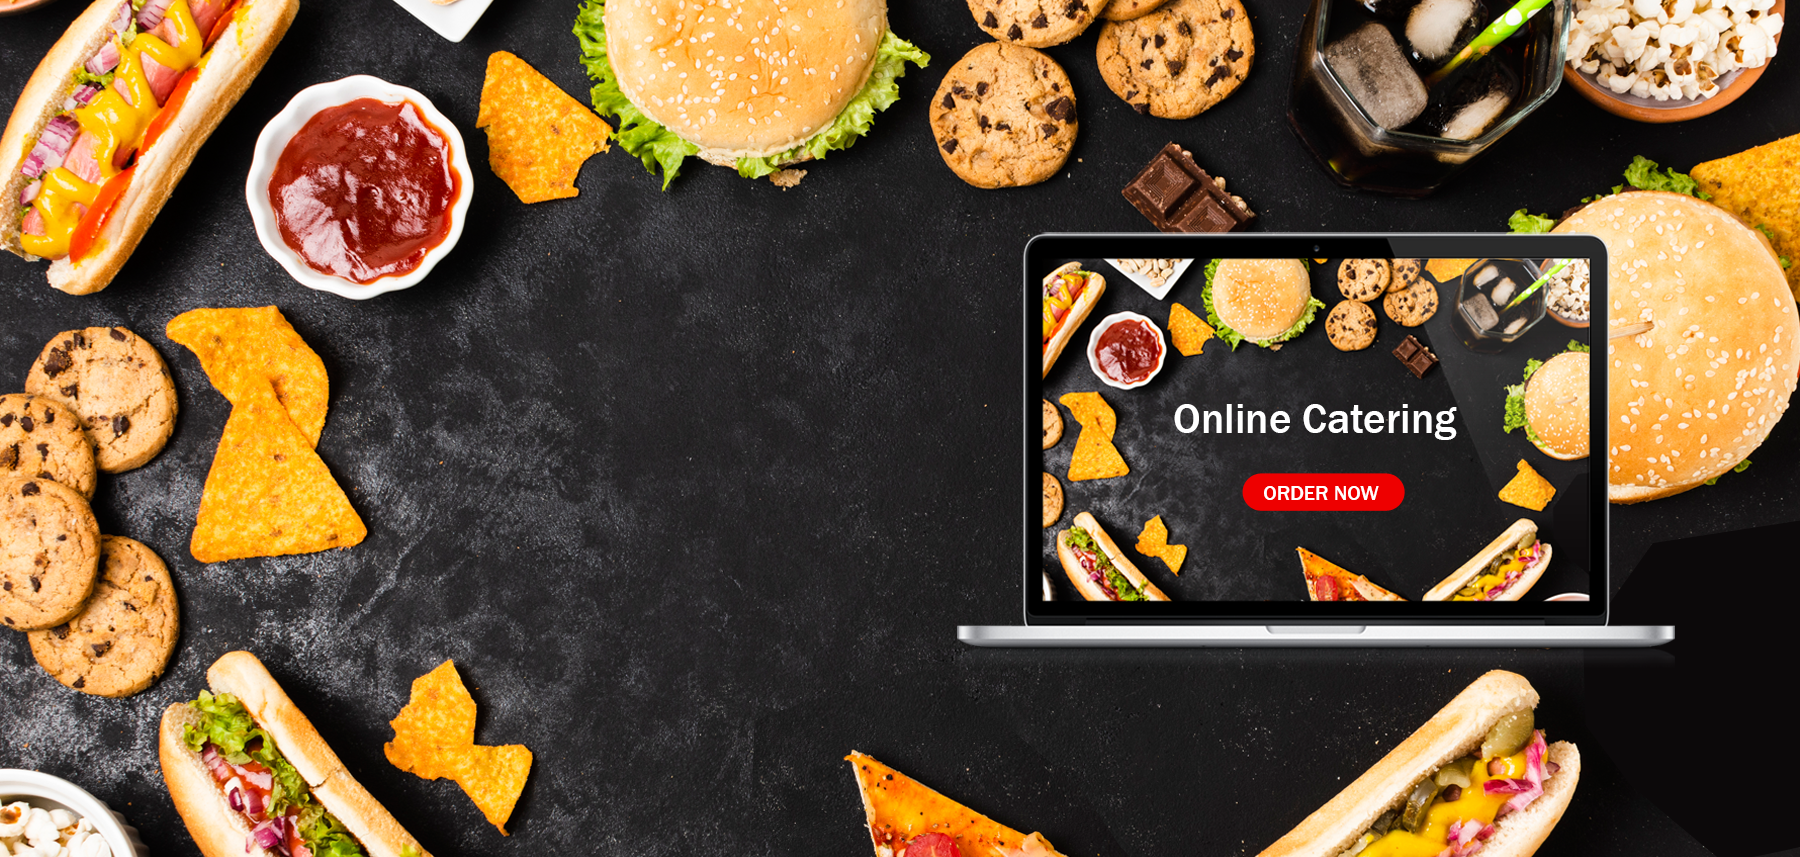 Online Catering Order